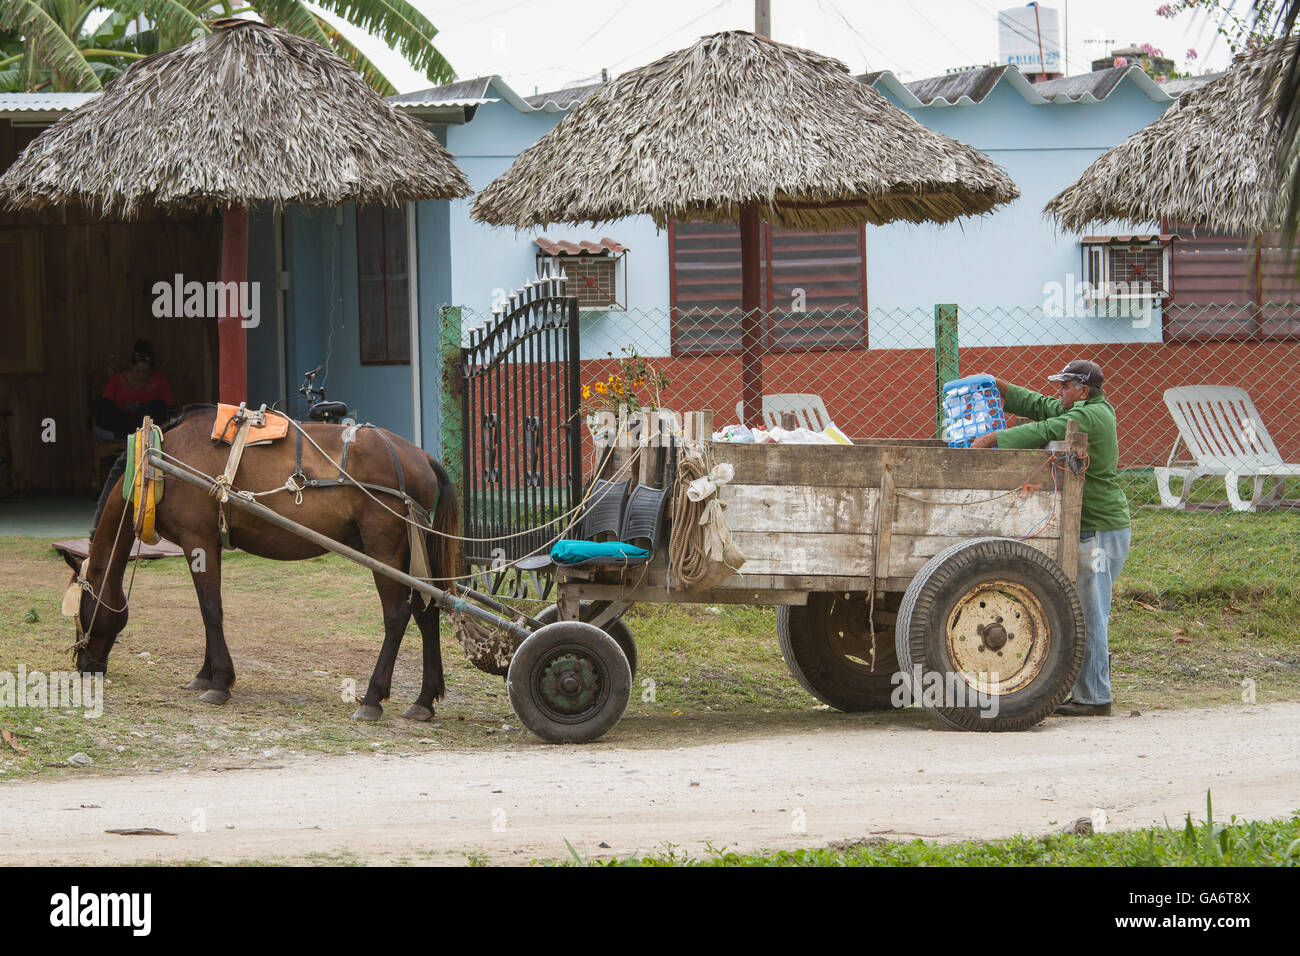 Man with horse-drawn wagon collecting trash from residences in Playa Larga, Cuba - Stock Image